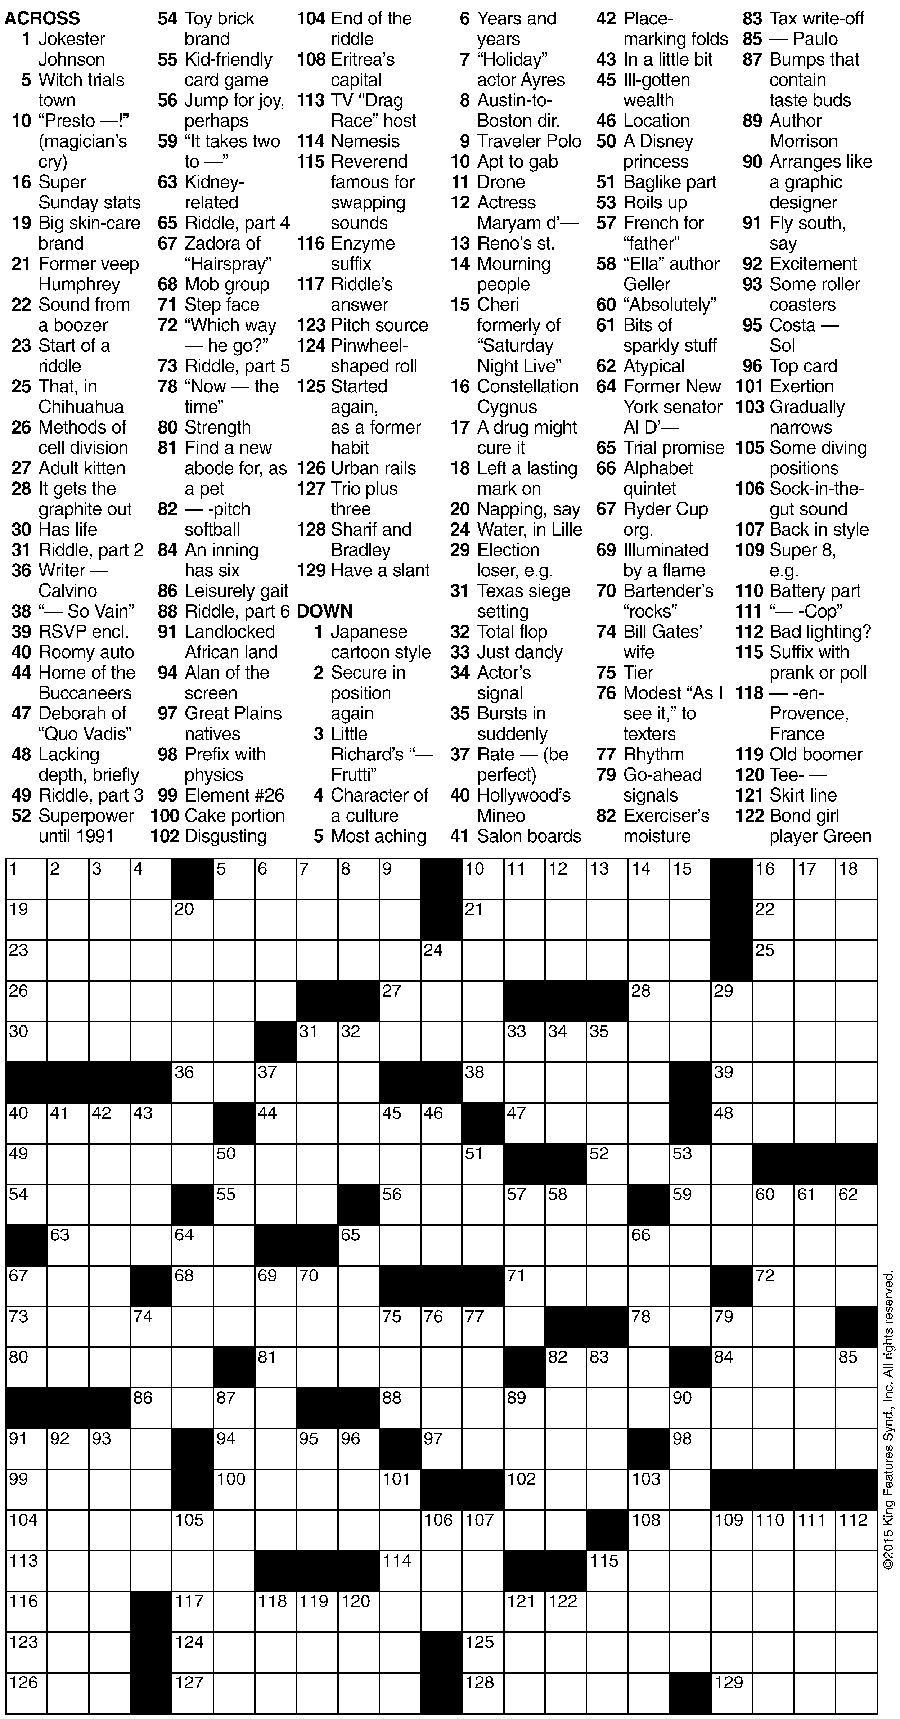 crossword1-1-ffe46ba6ab8a89d9.png